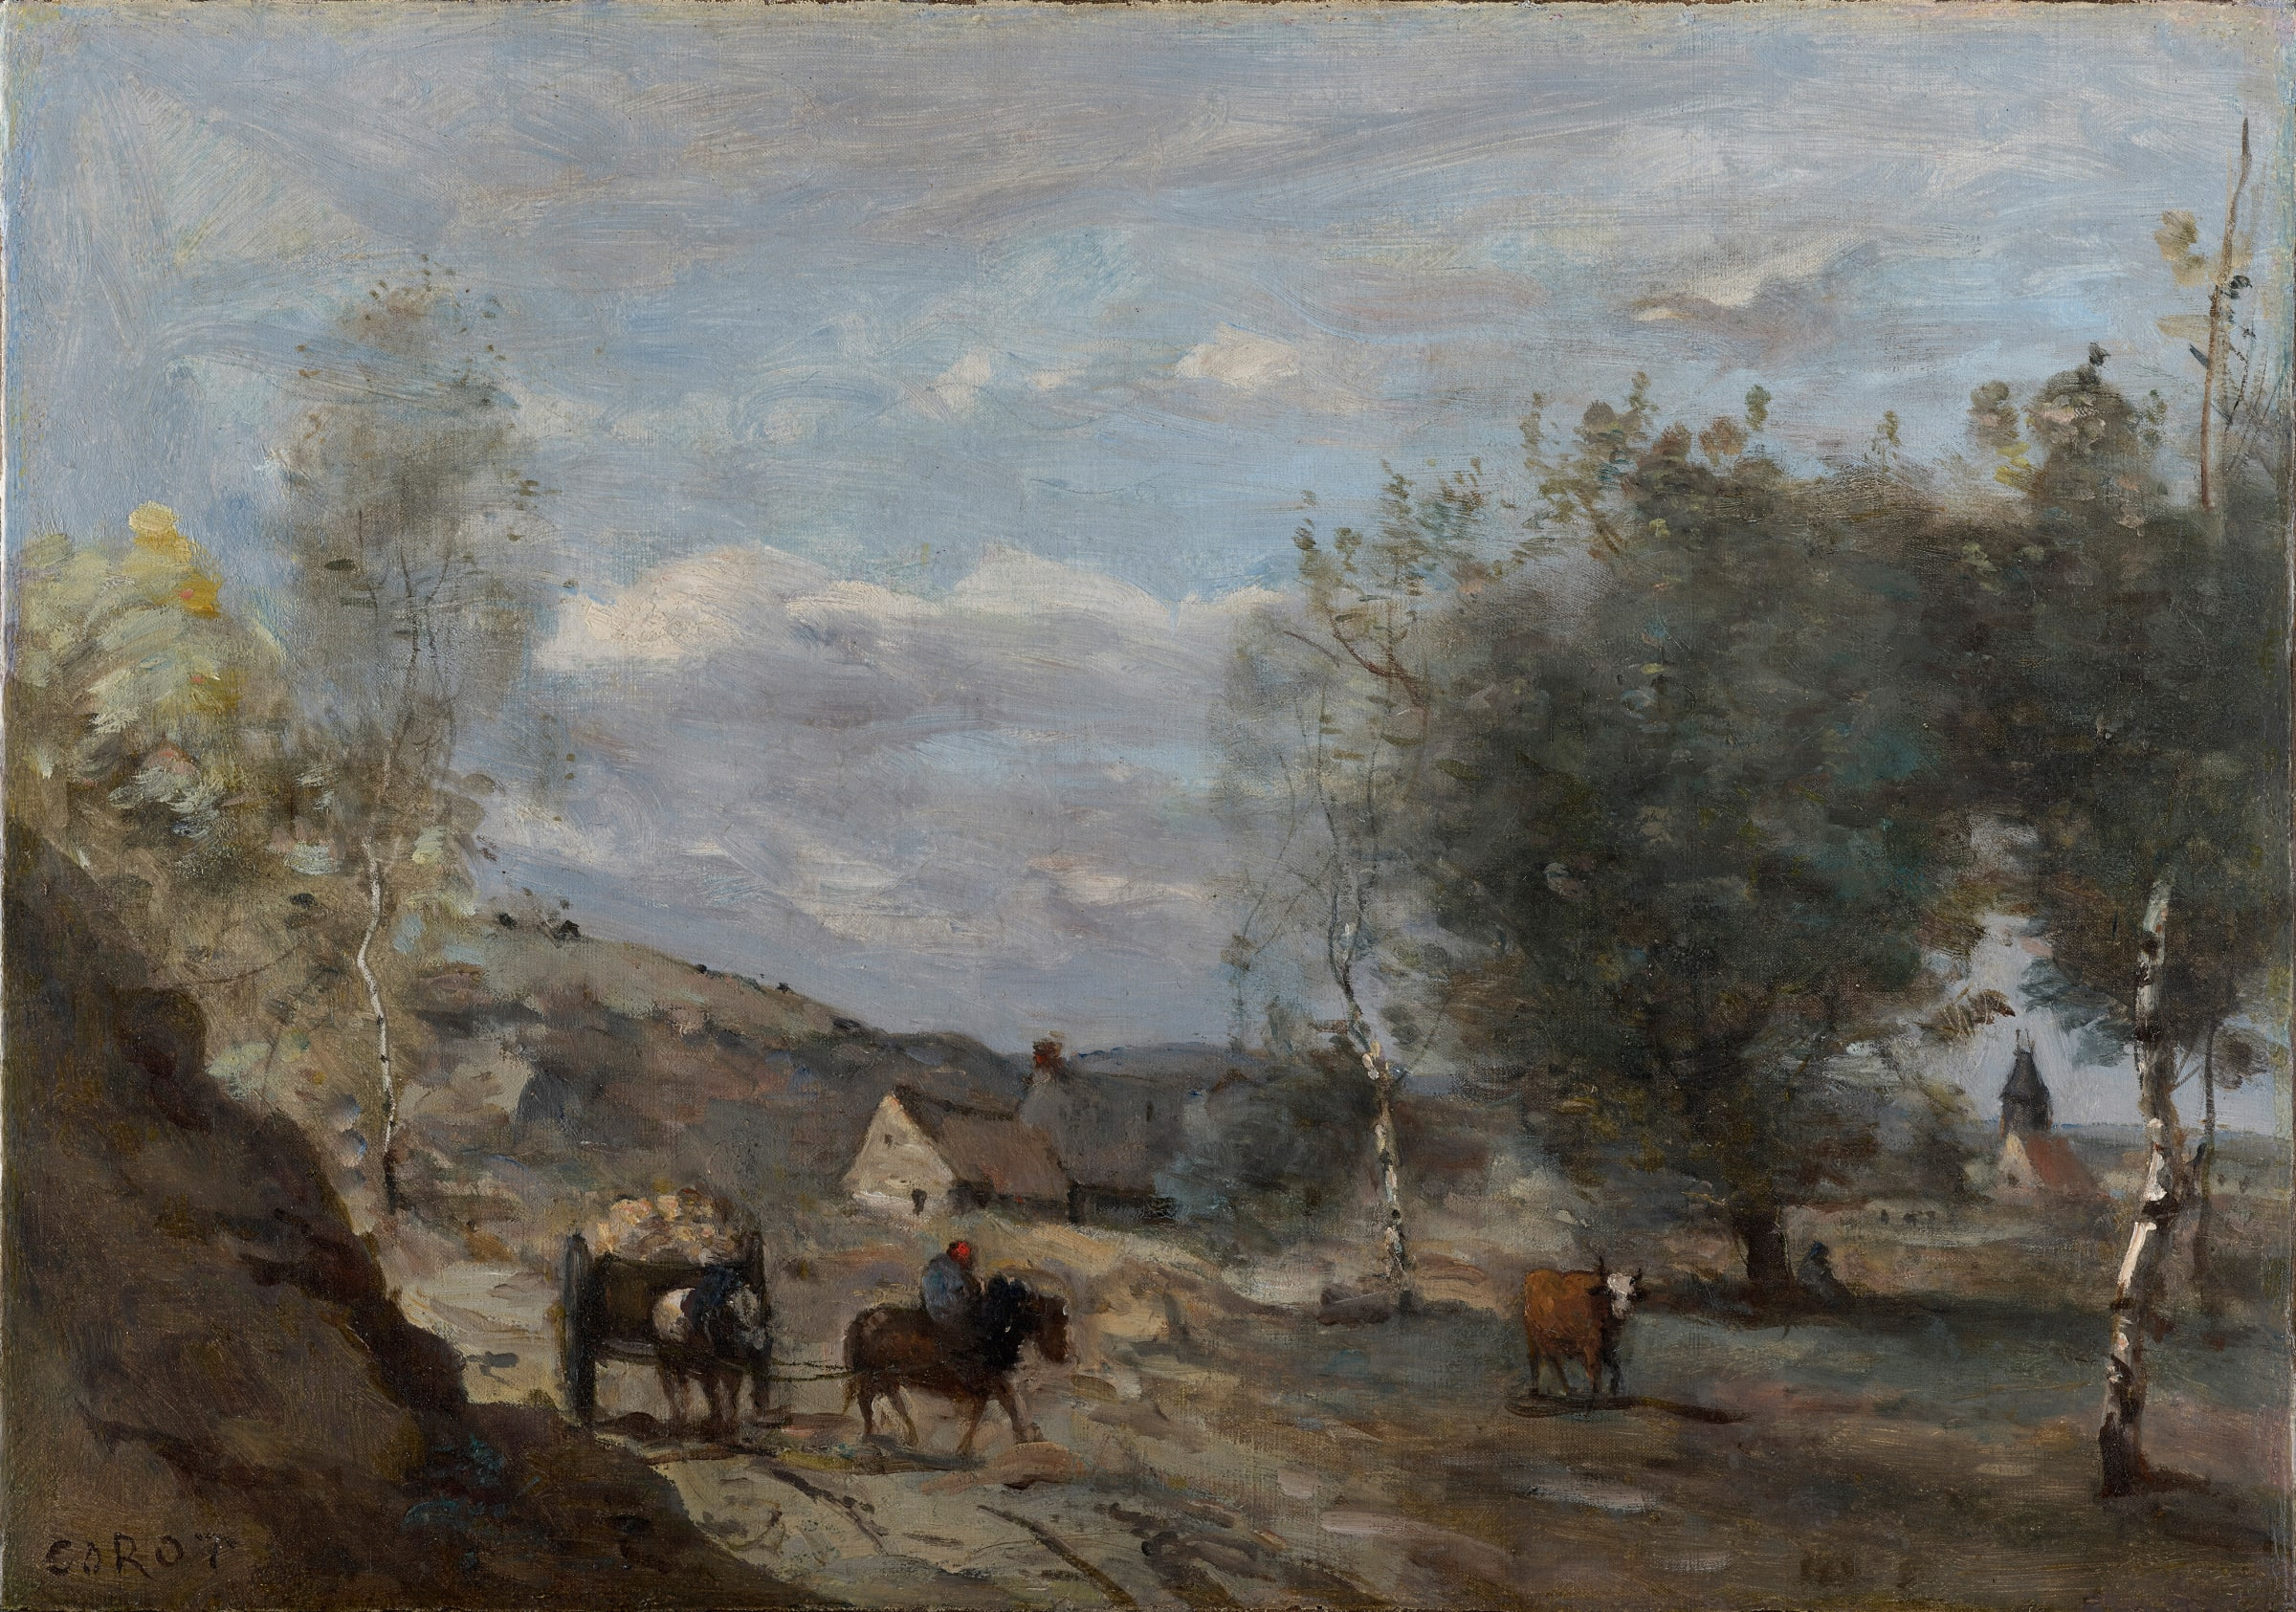 """<span class=""""link fancybox-details-link""""><a href=""""/viewing-room/2/works/artworks_standalone9470/"""">View Detail Page</a></span><div class=""""signed_and_dated"""">Signed 'COROT' lower left</div><div class=""""medium"""">Oil on canvas</div><div class=""""dimensions"""">32.3 x 45.9 cm<br /> 12 ¾ x 18 1/16 inches</div>"""